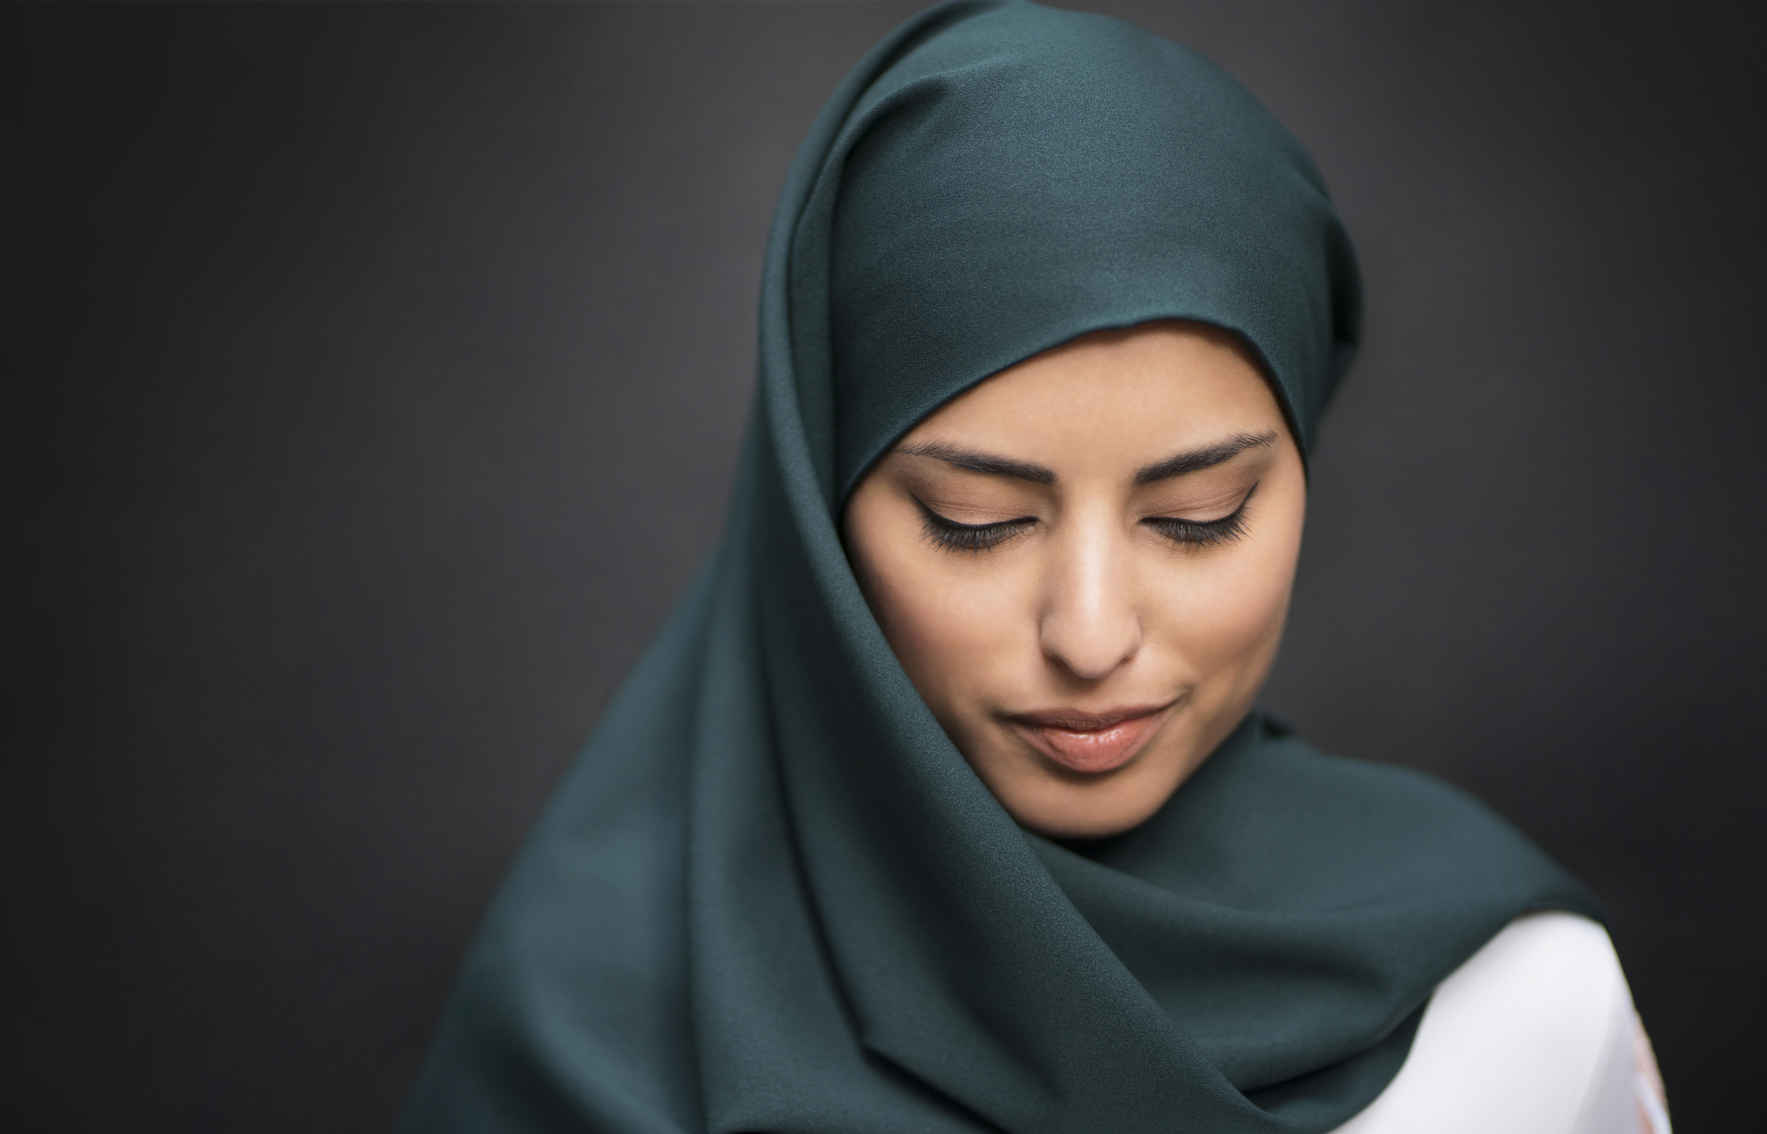 Donate Now to Help Abused Arab Women image